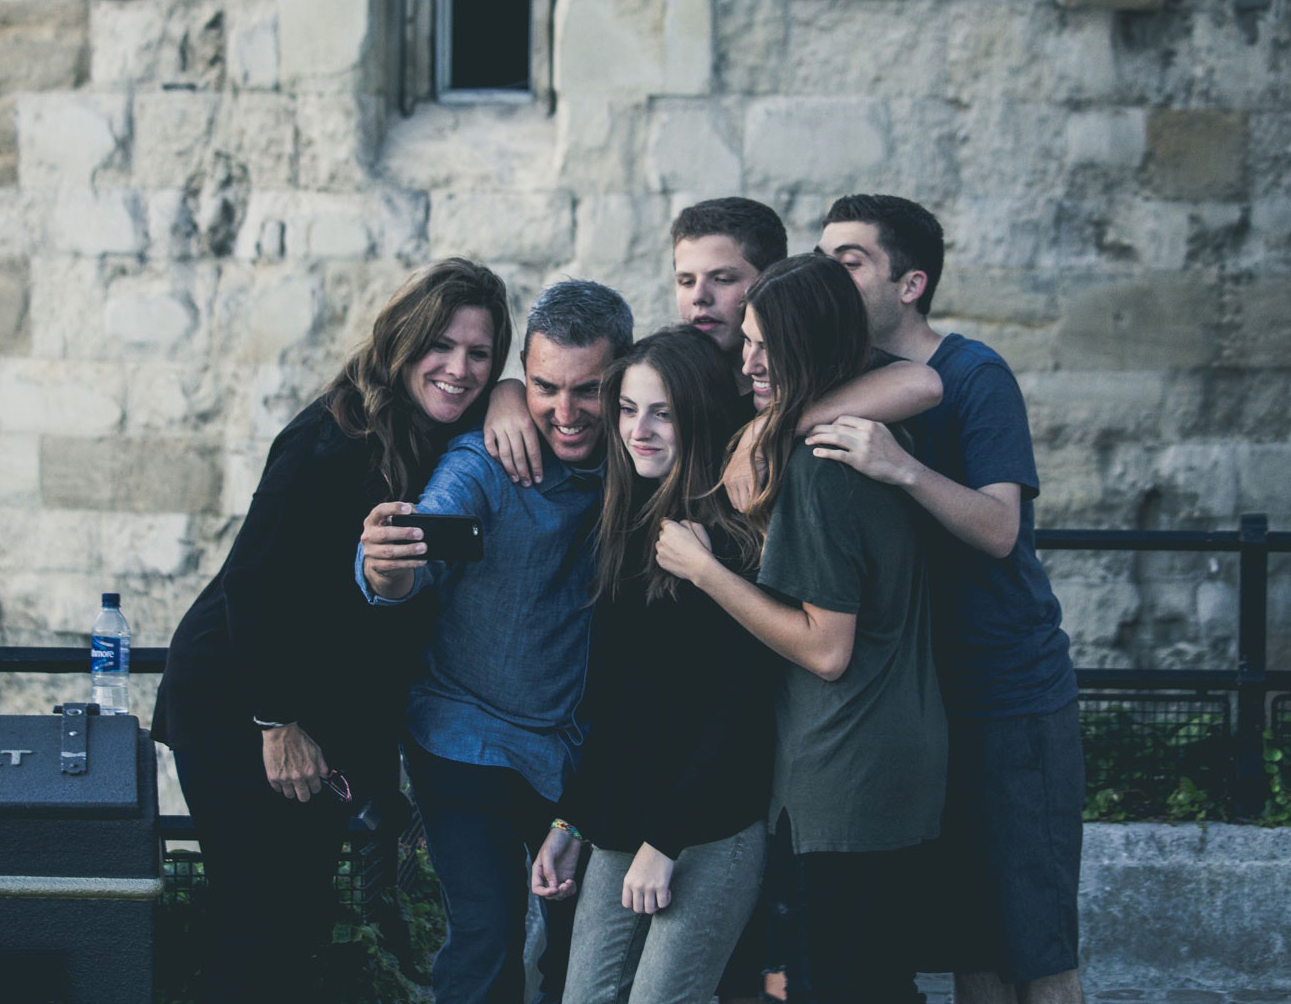 family taking a photo together